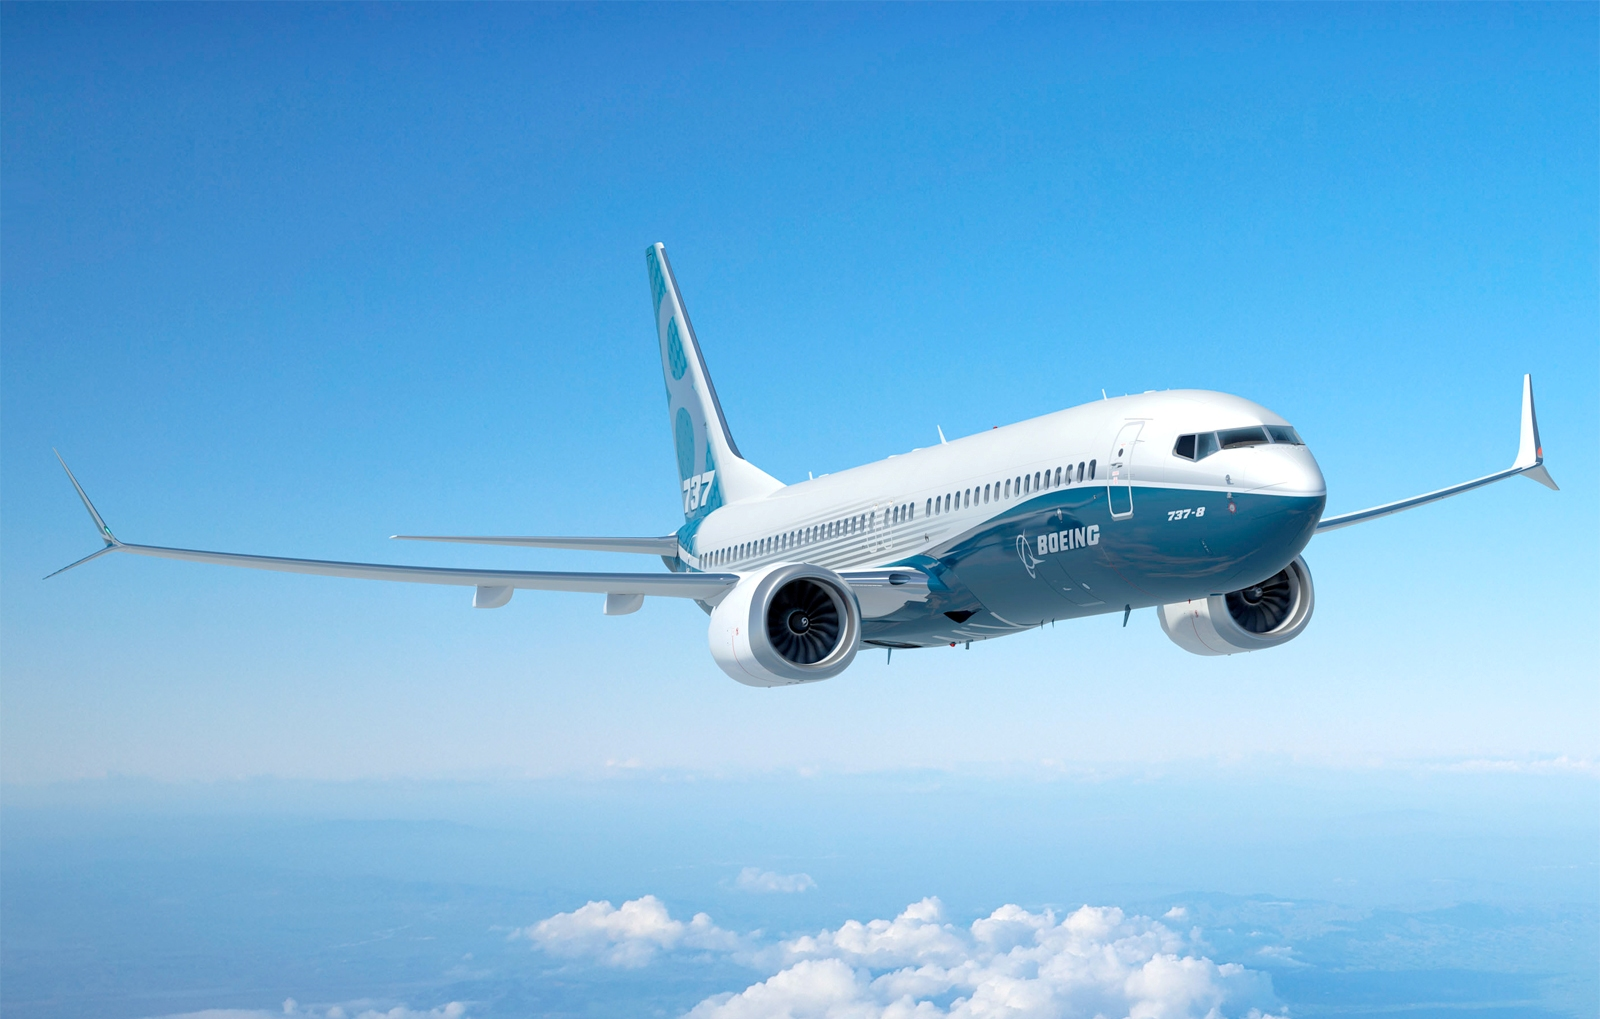 boeing 737-8 max with new winglet design aircraft wallpaper 3206